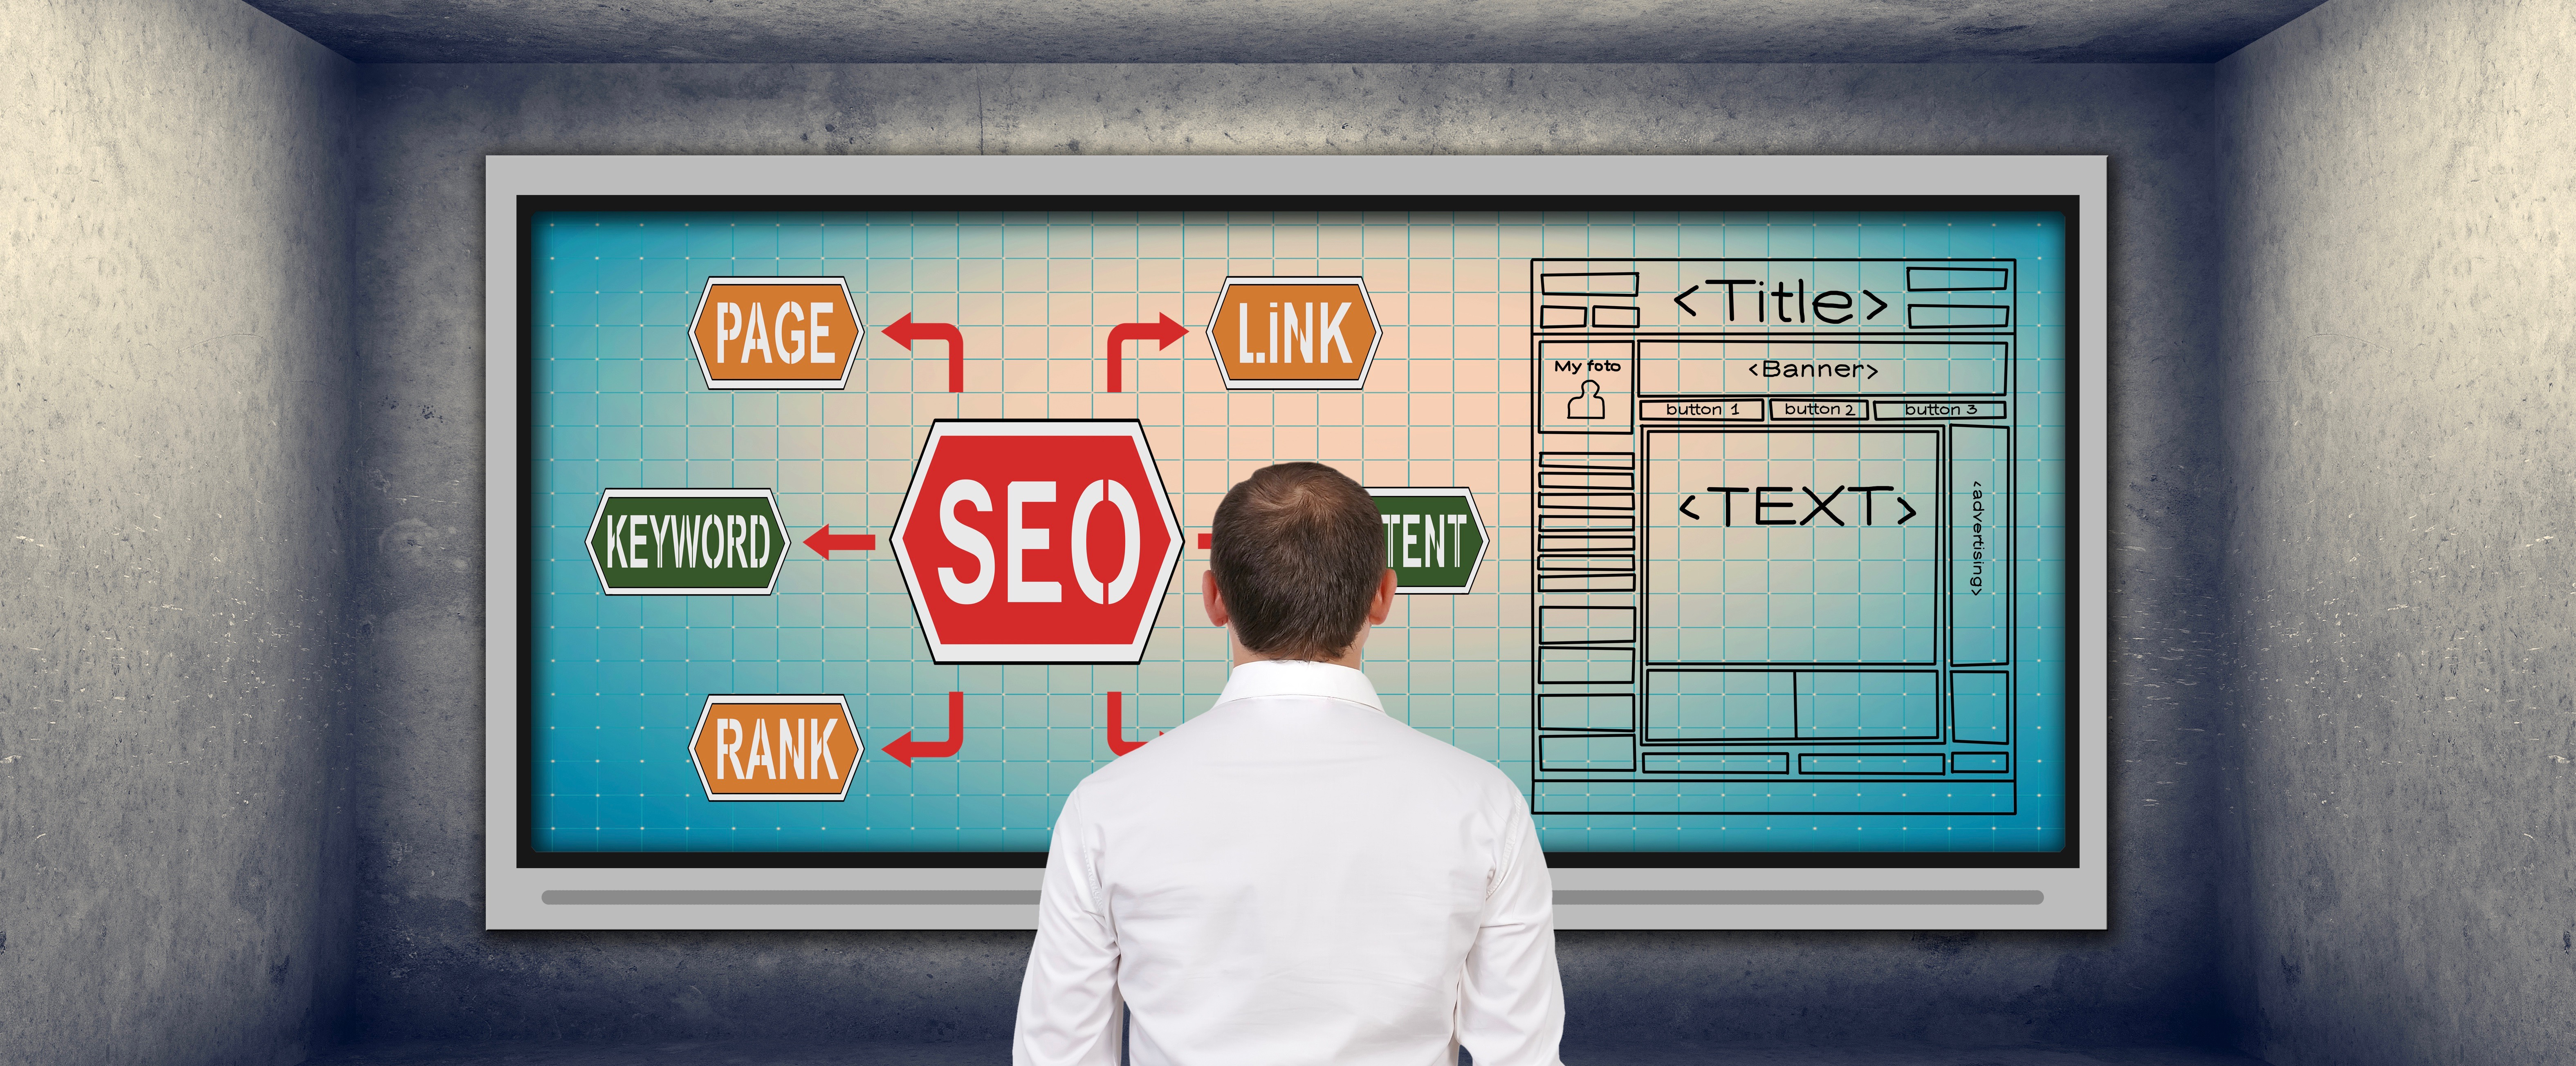 A Brief History of Search & SEO